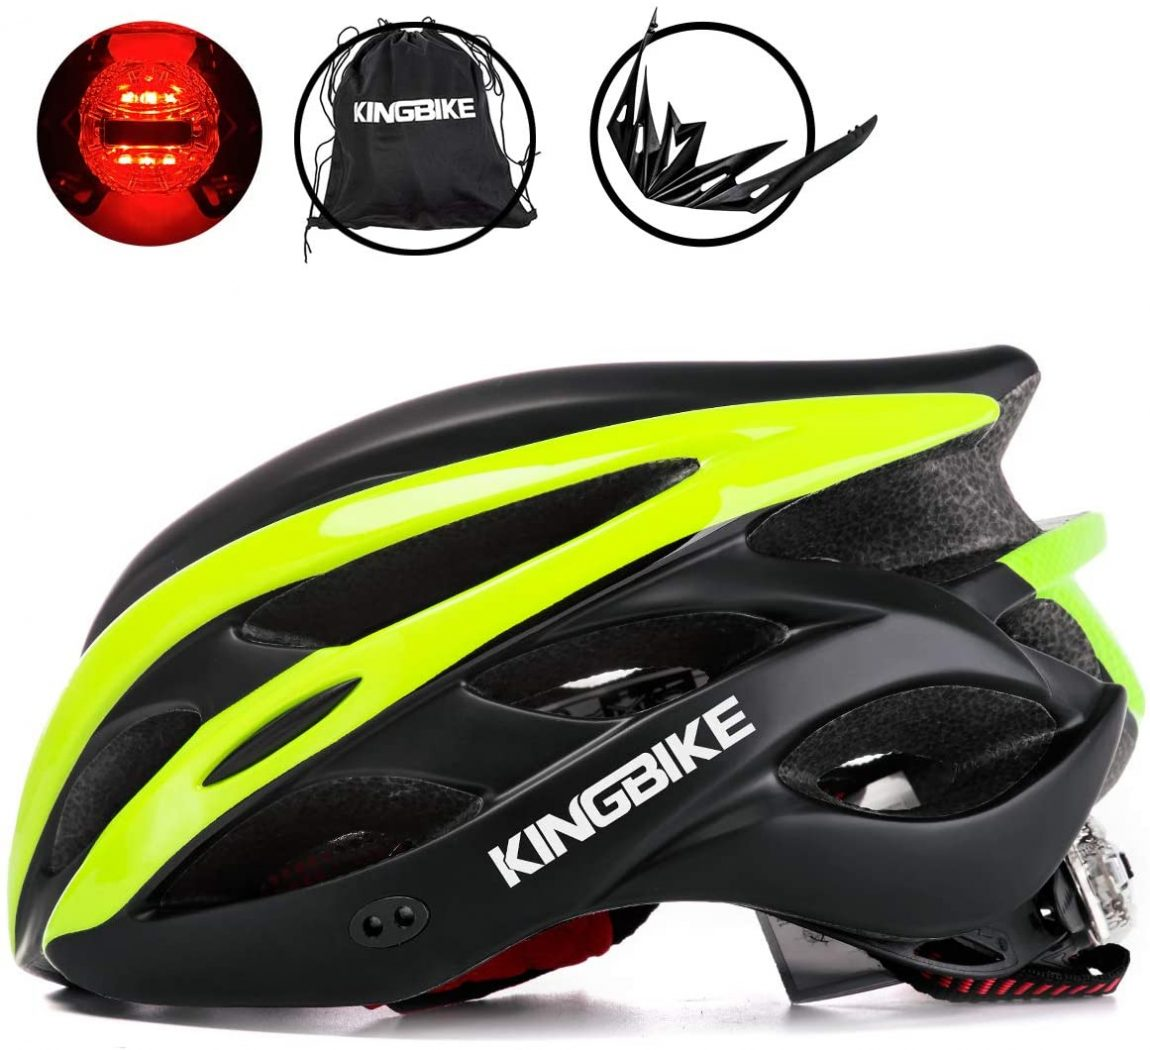 Side view of yellow bicycle helmet